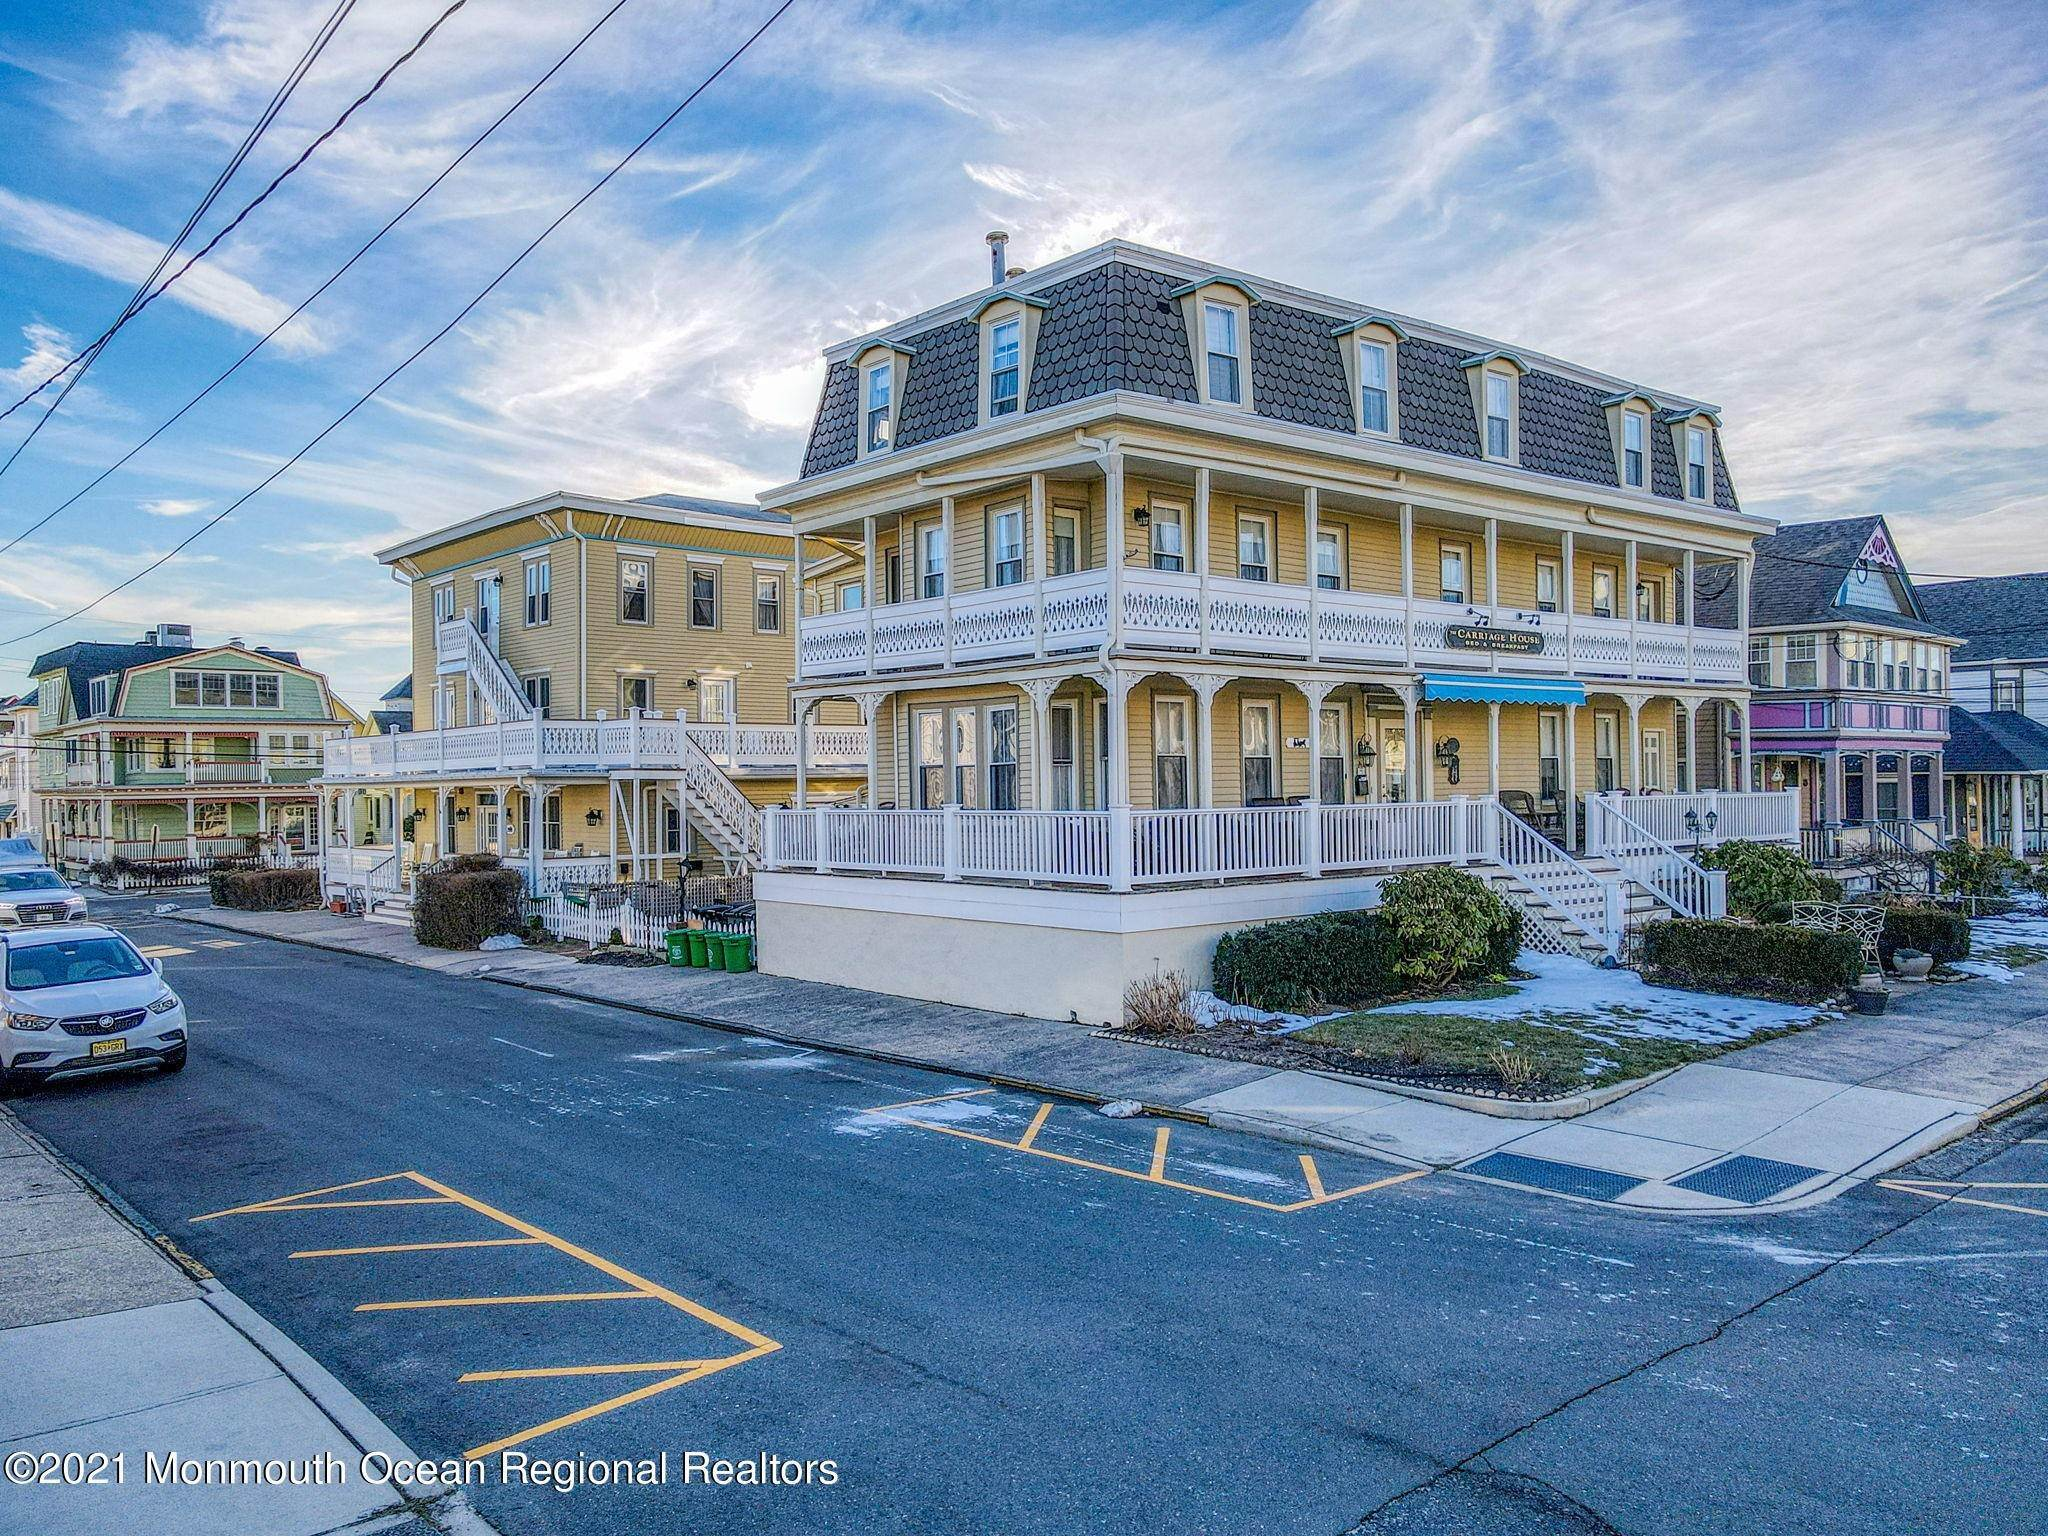 Commercial / Office for Sale at 18 Heck Avenue Ocean Grove, New Jersey, 07756 United States